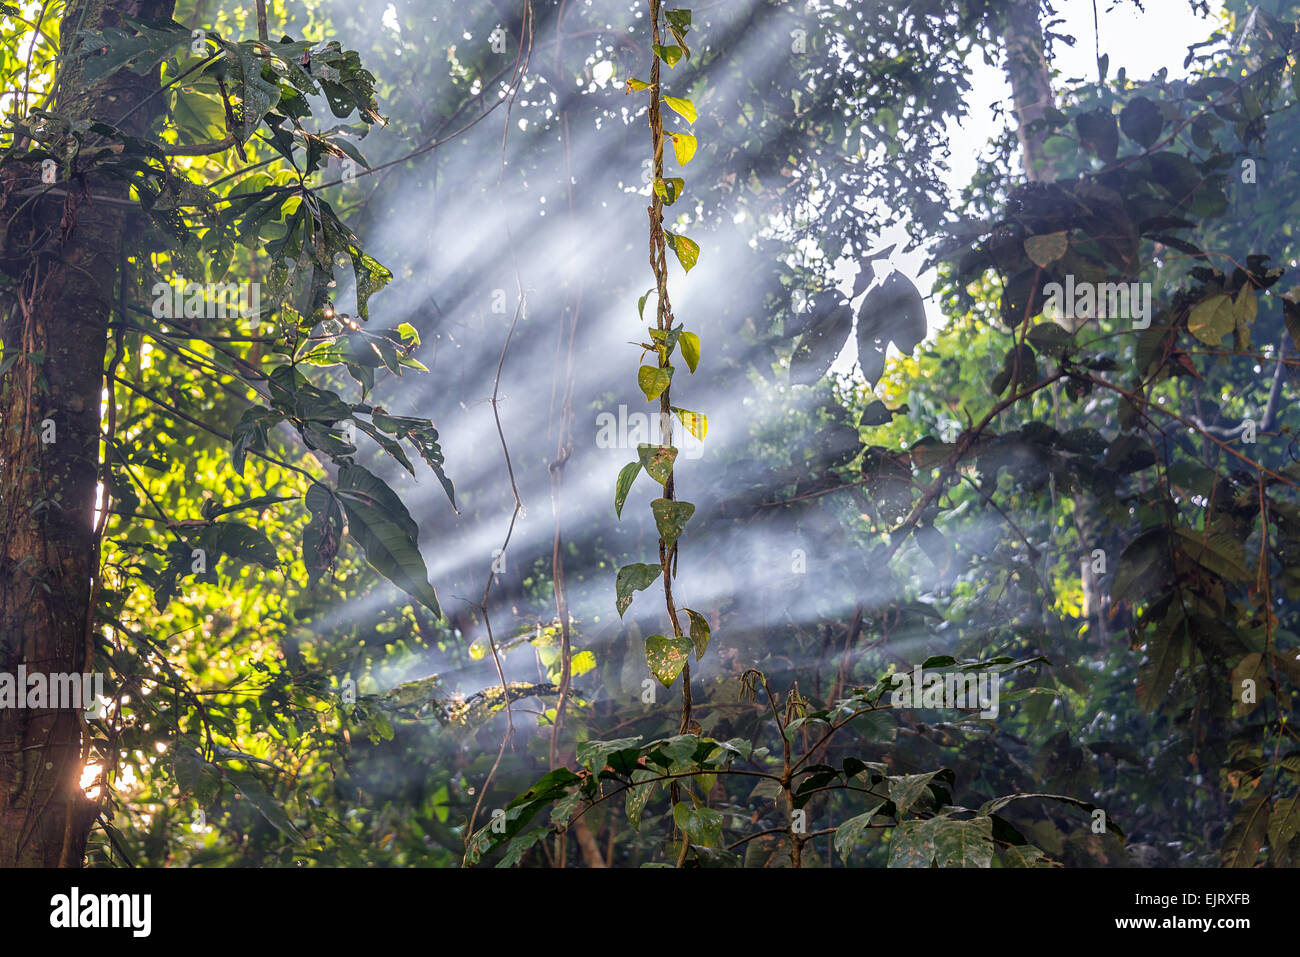 Beams of like passing through smoke in the Amazon Rainforest near Iquitos, Peru - Stock Image